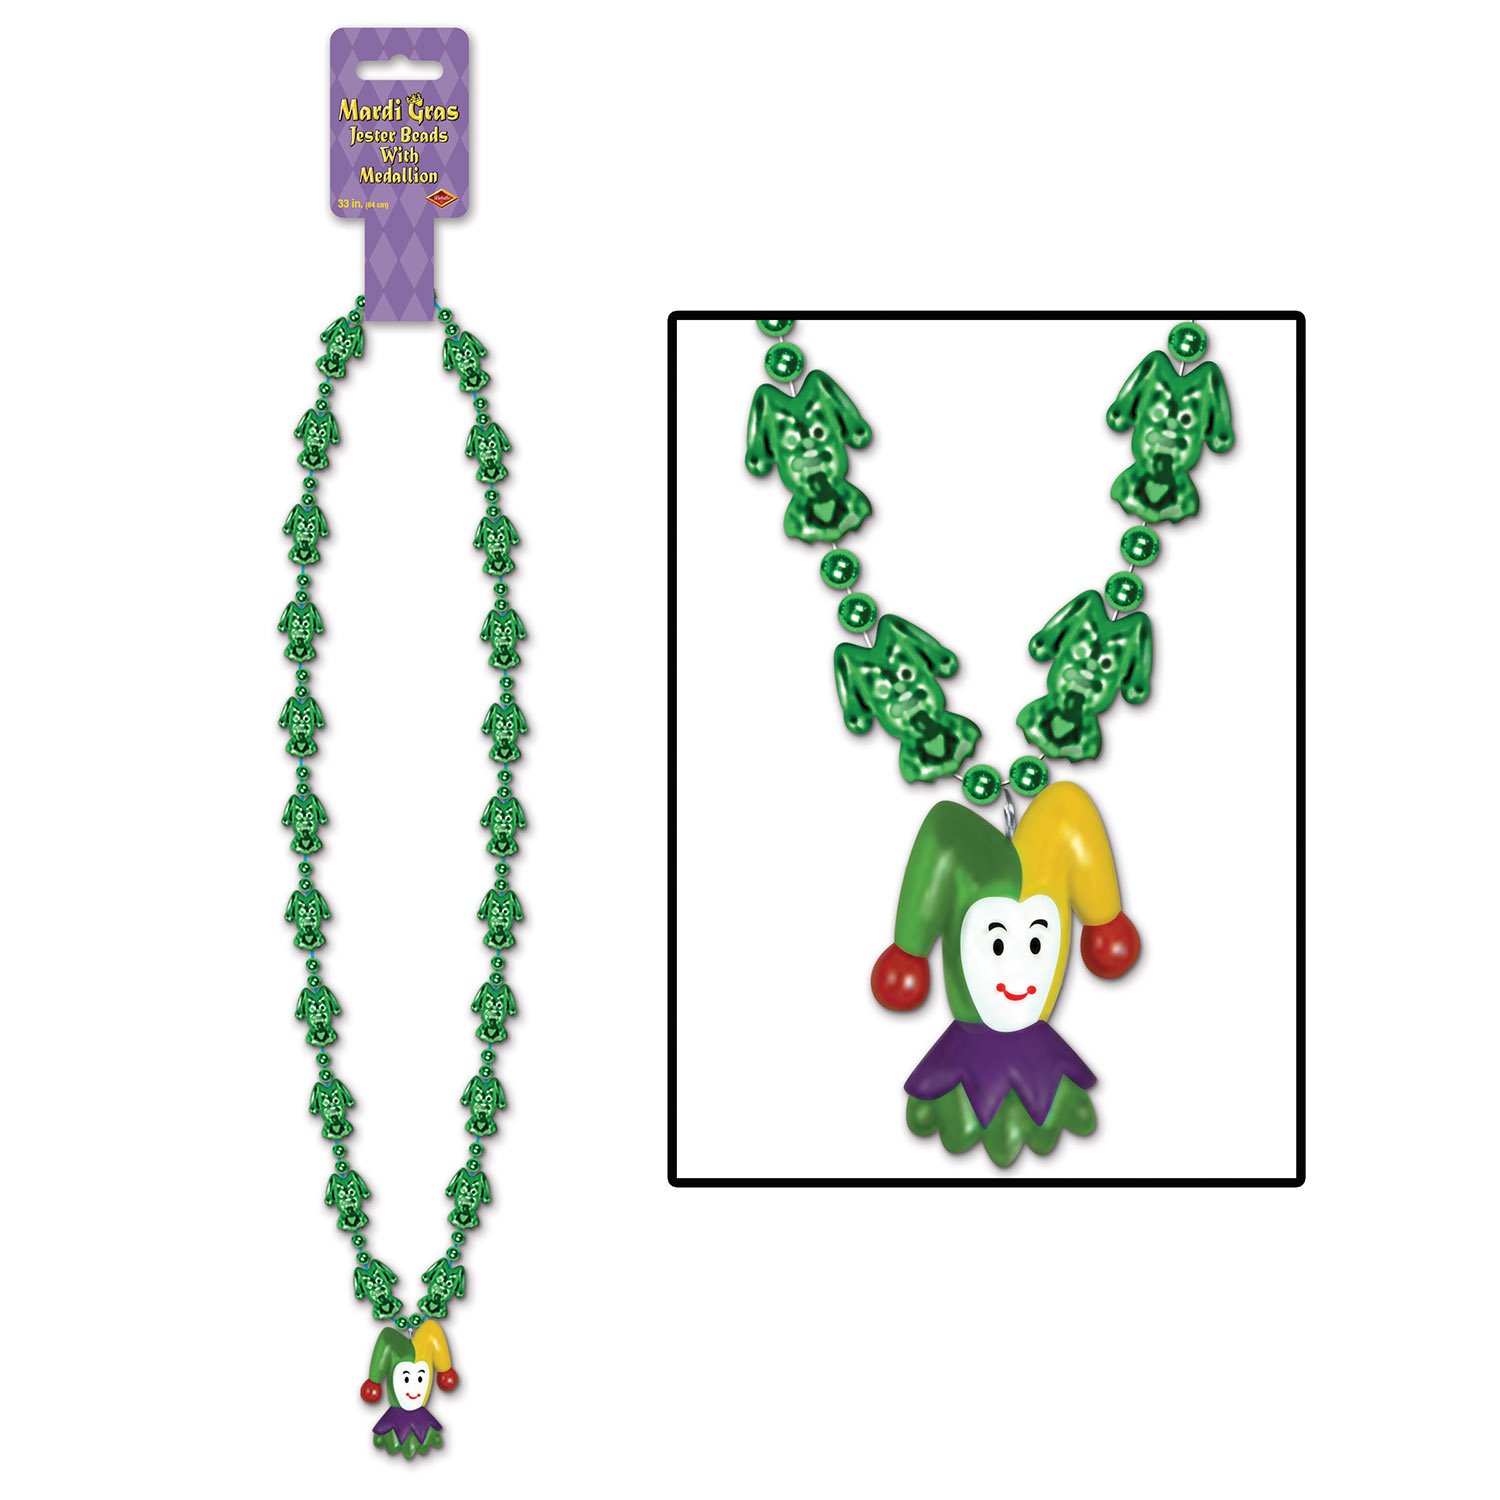 Mardi Gras Jester Beads w/Jester Medal (Pack of 12) Mardi gras, jester, beads, medal, medalion